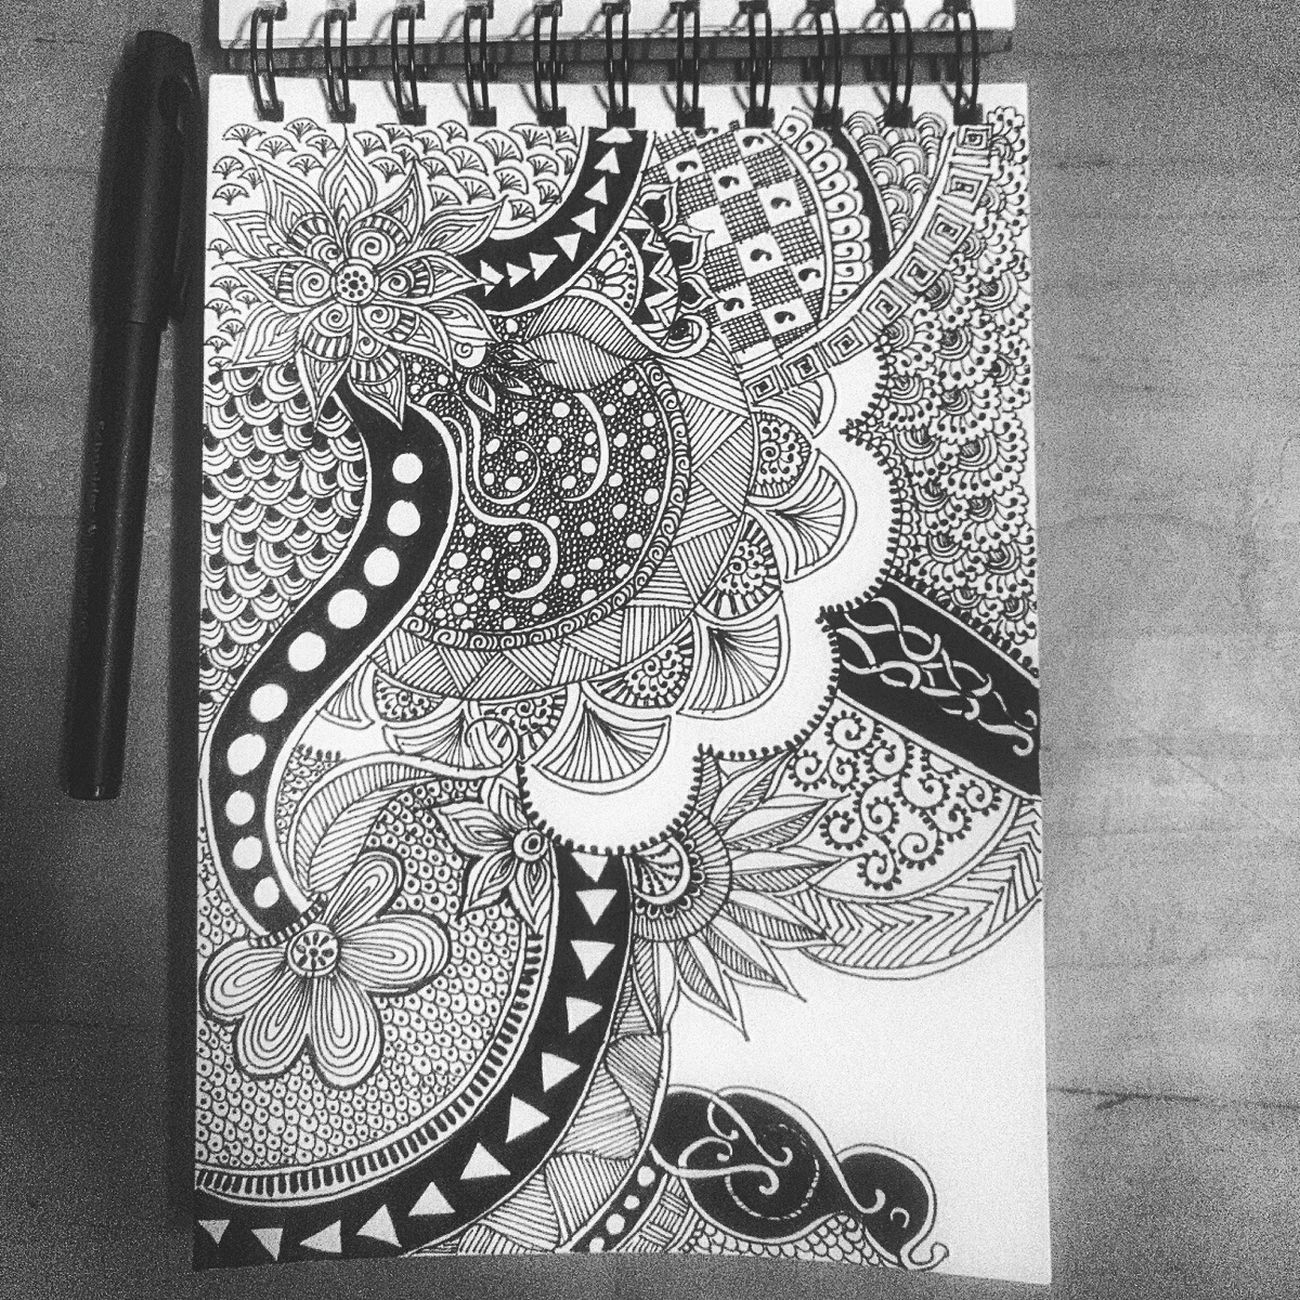 Zentangle Zentangleart Random Patterns Boring Day Blackandwhite Design